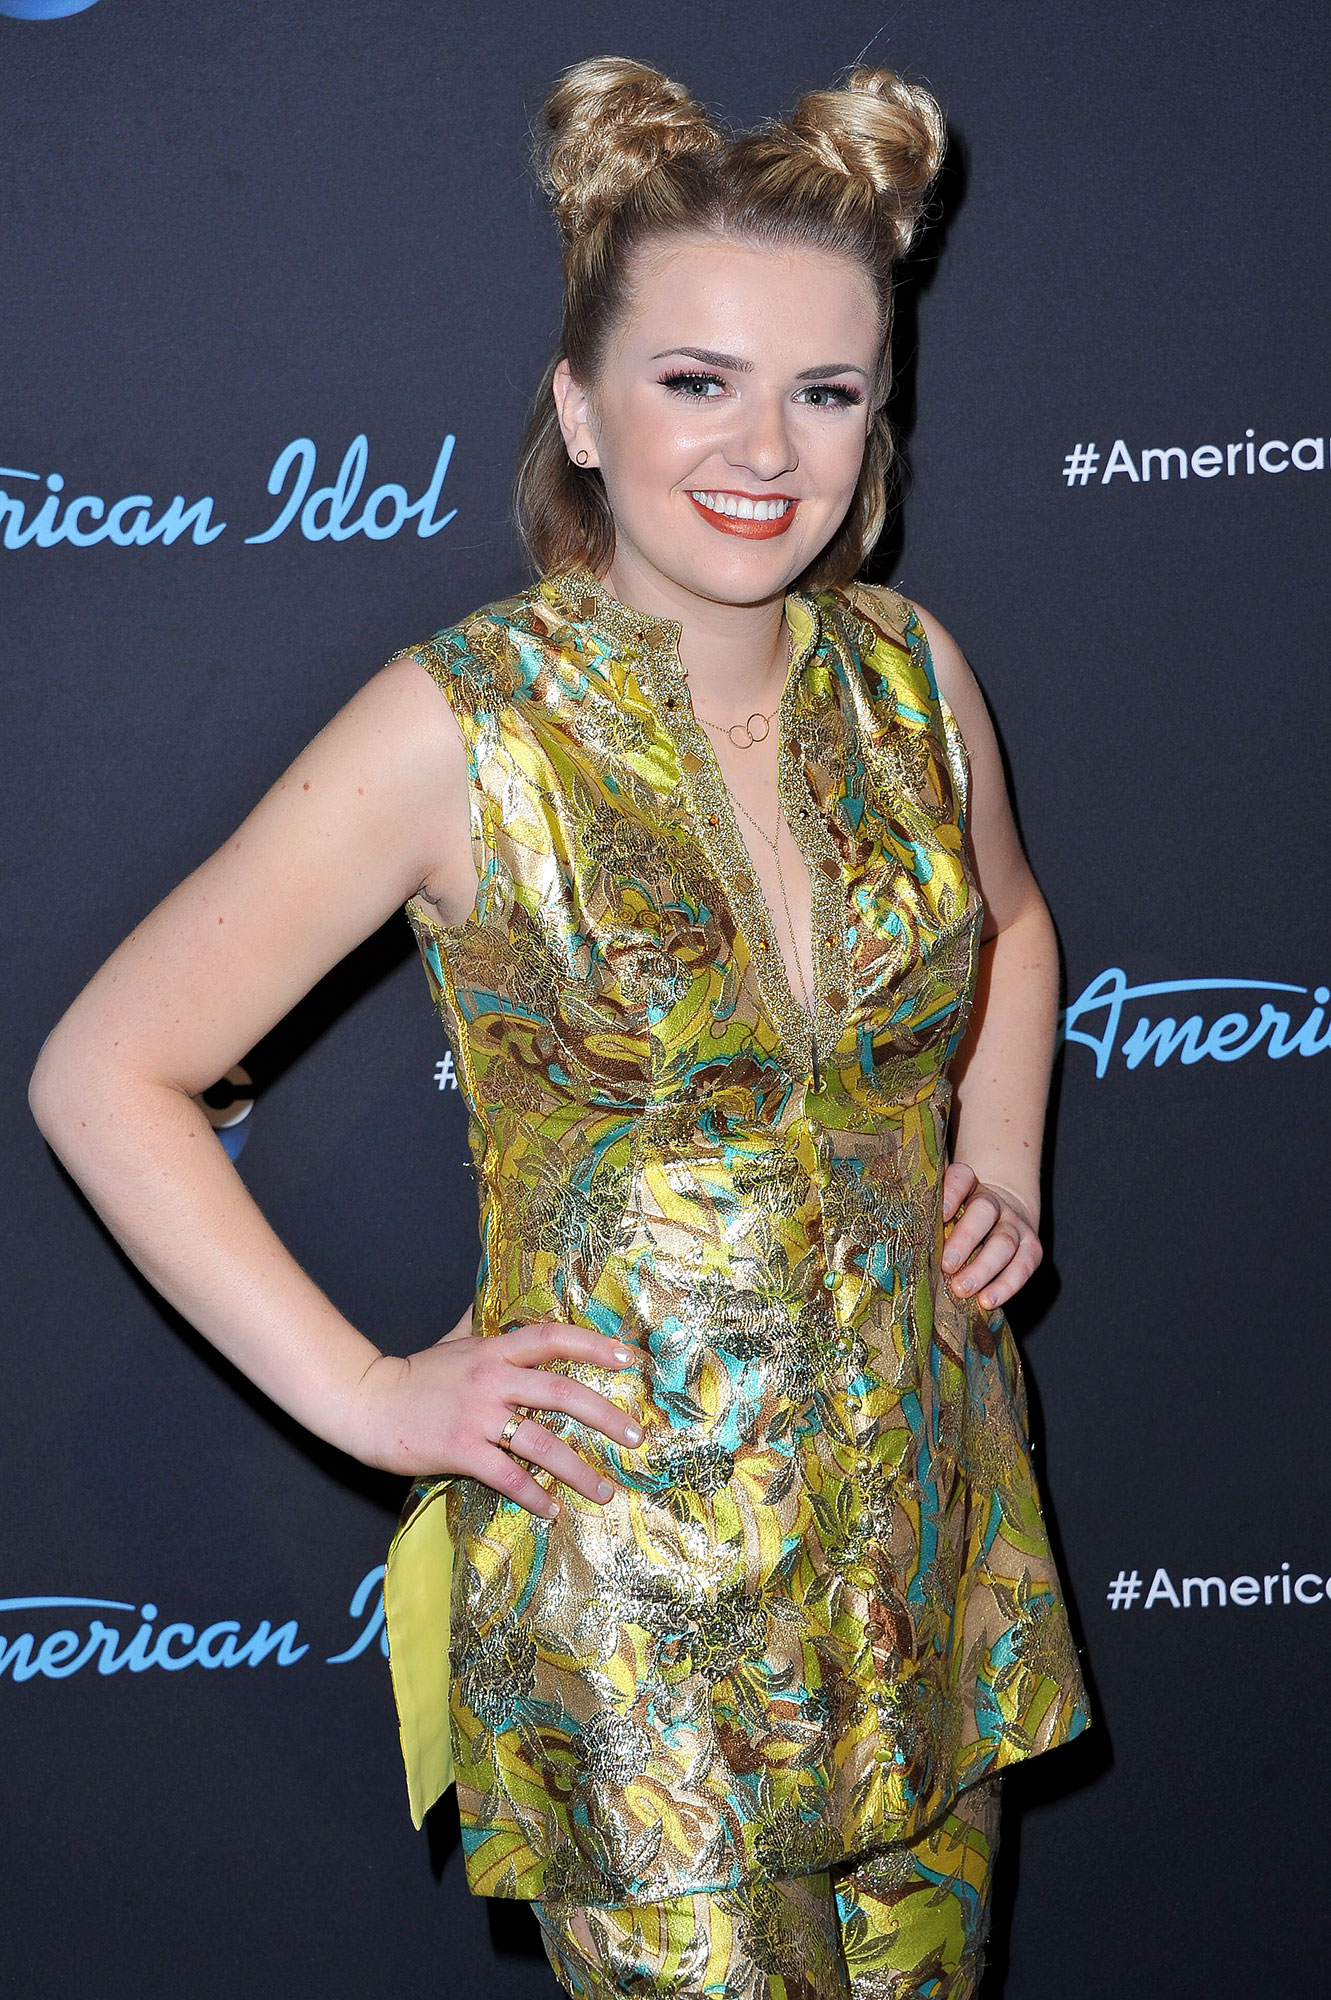 """Maddie Poppe American Idol Winners gallery - Season: 16 Runner-up: Caleb Lee Hutchinson Standout Performances: Colbie Caillat's """"Bubbly,"""" The Beach Boys' """"God Only Knows"""" Debut Single: """"Going Going Gone"""""""